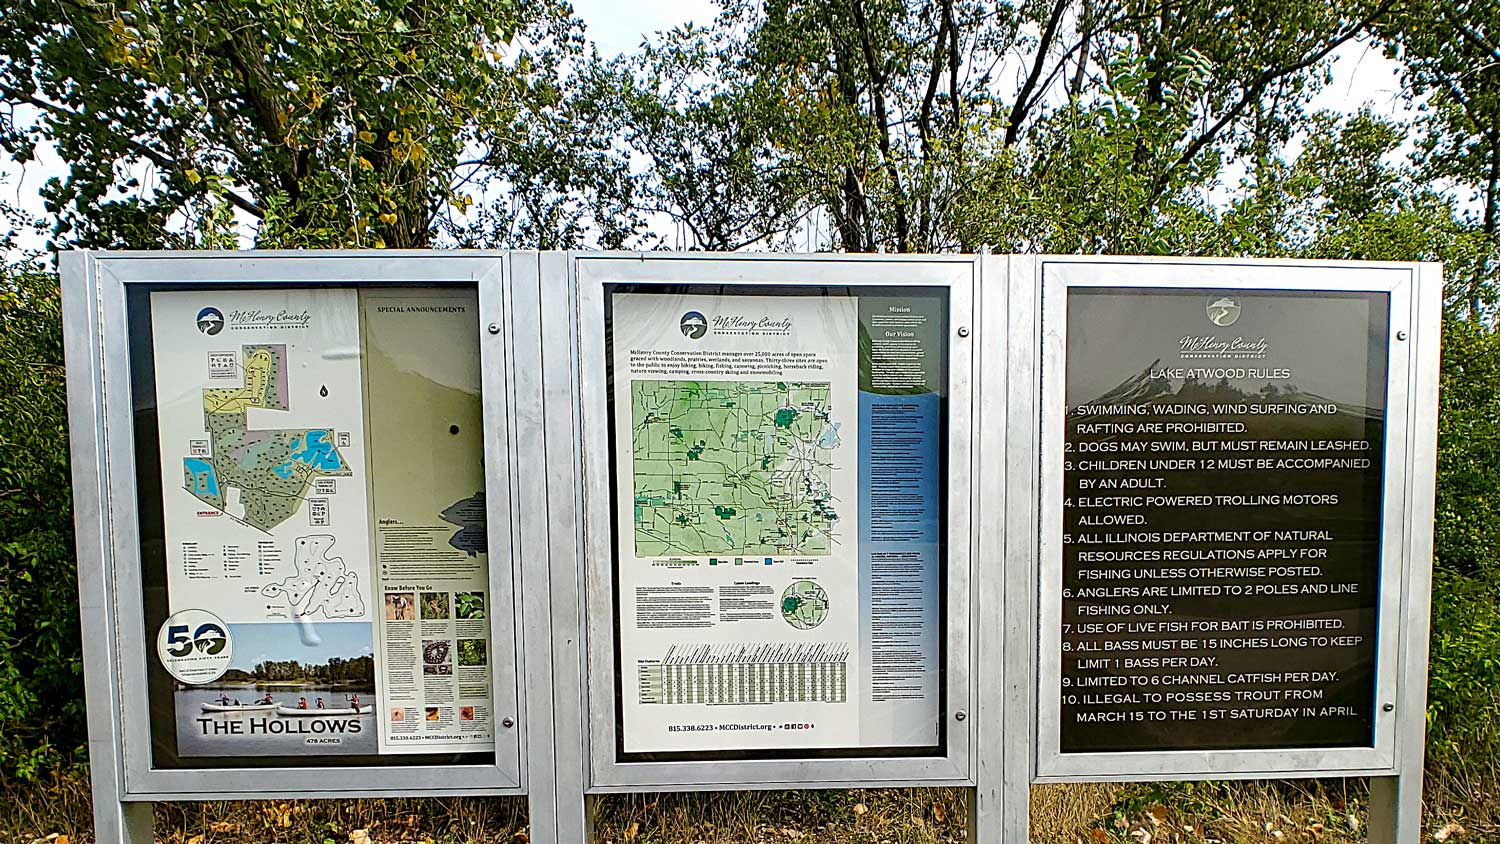 Trail maps and information for The Hollows, McHenry County Conservation District map, and Lake Atwood rules.